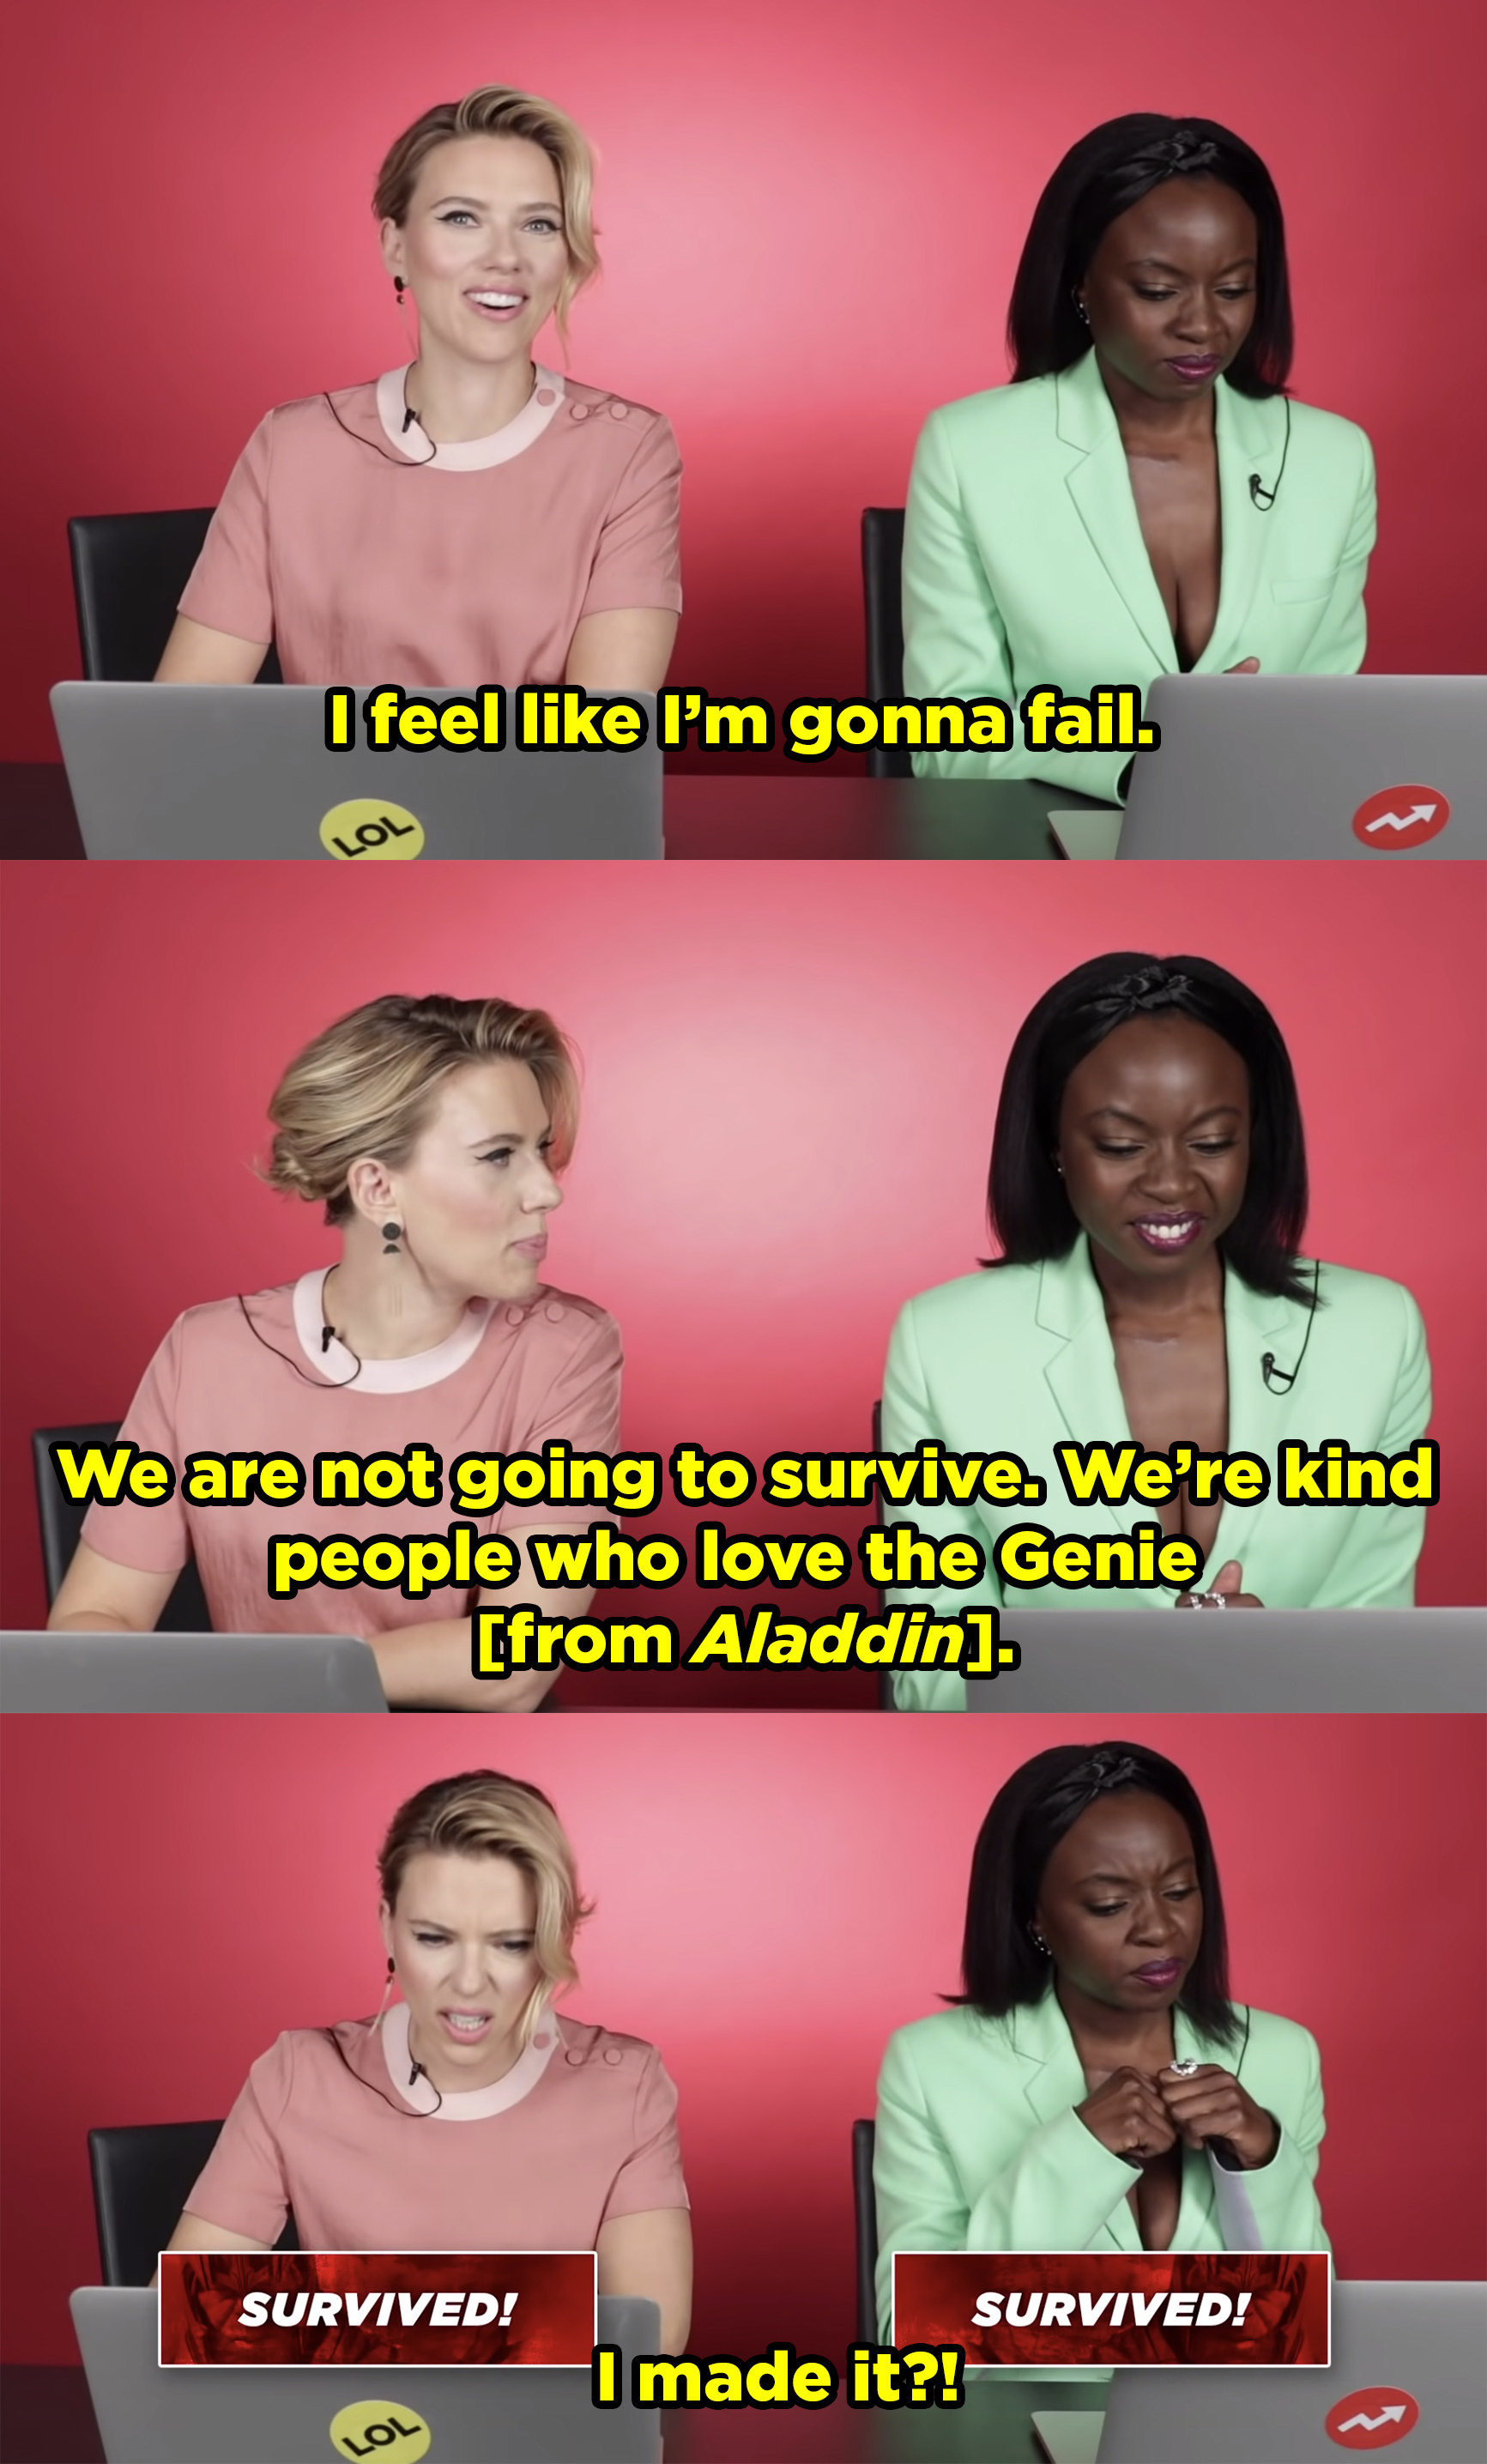 Scarlett Johansson and Danai Gurira take a BuzzFeed quiz to find out if they'd survive Thano's snap. Scarlett is very adamant about not surviving, but then she does!